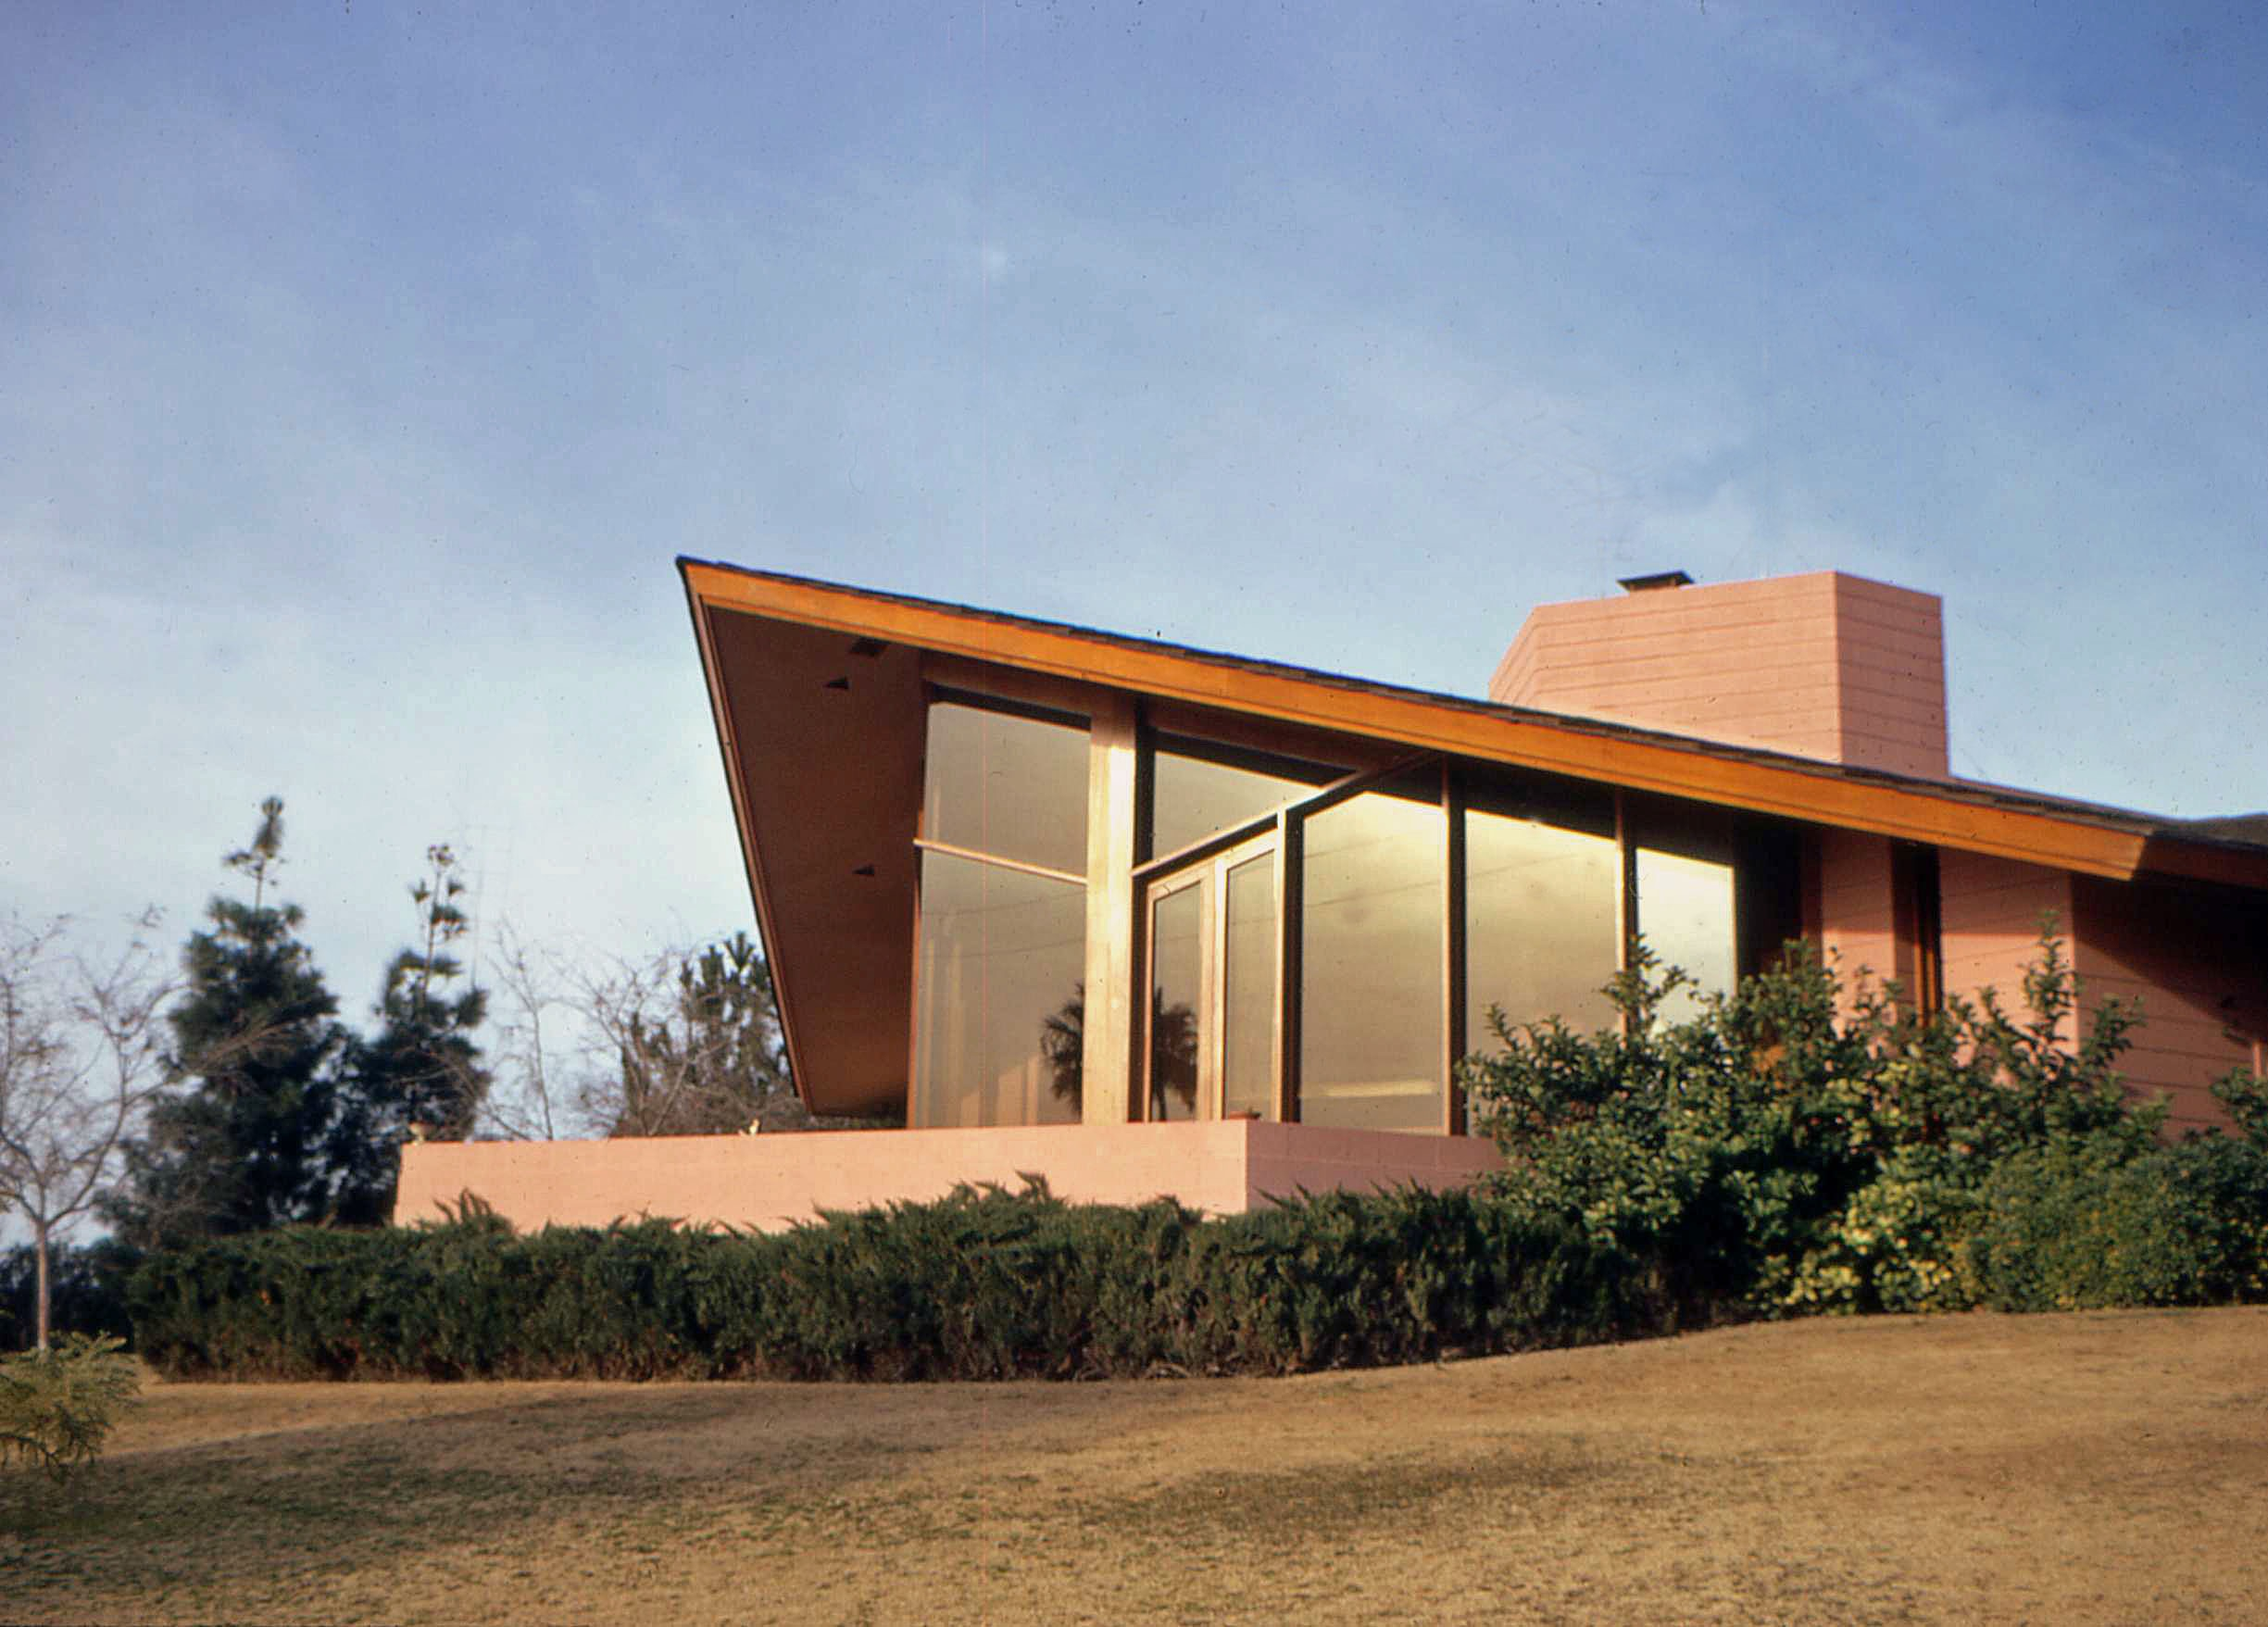 Ablin Residence (built in 1961, Photo: 1975), Frank Lloyd Wright. Image courtesy of Thomas Olsen.